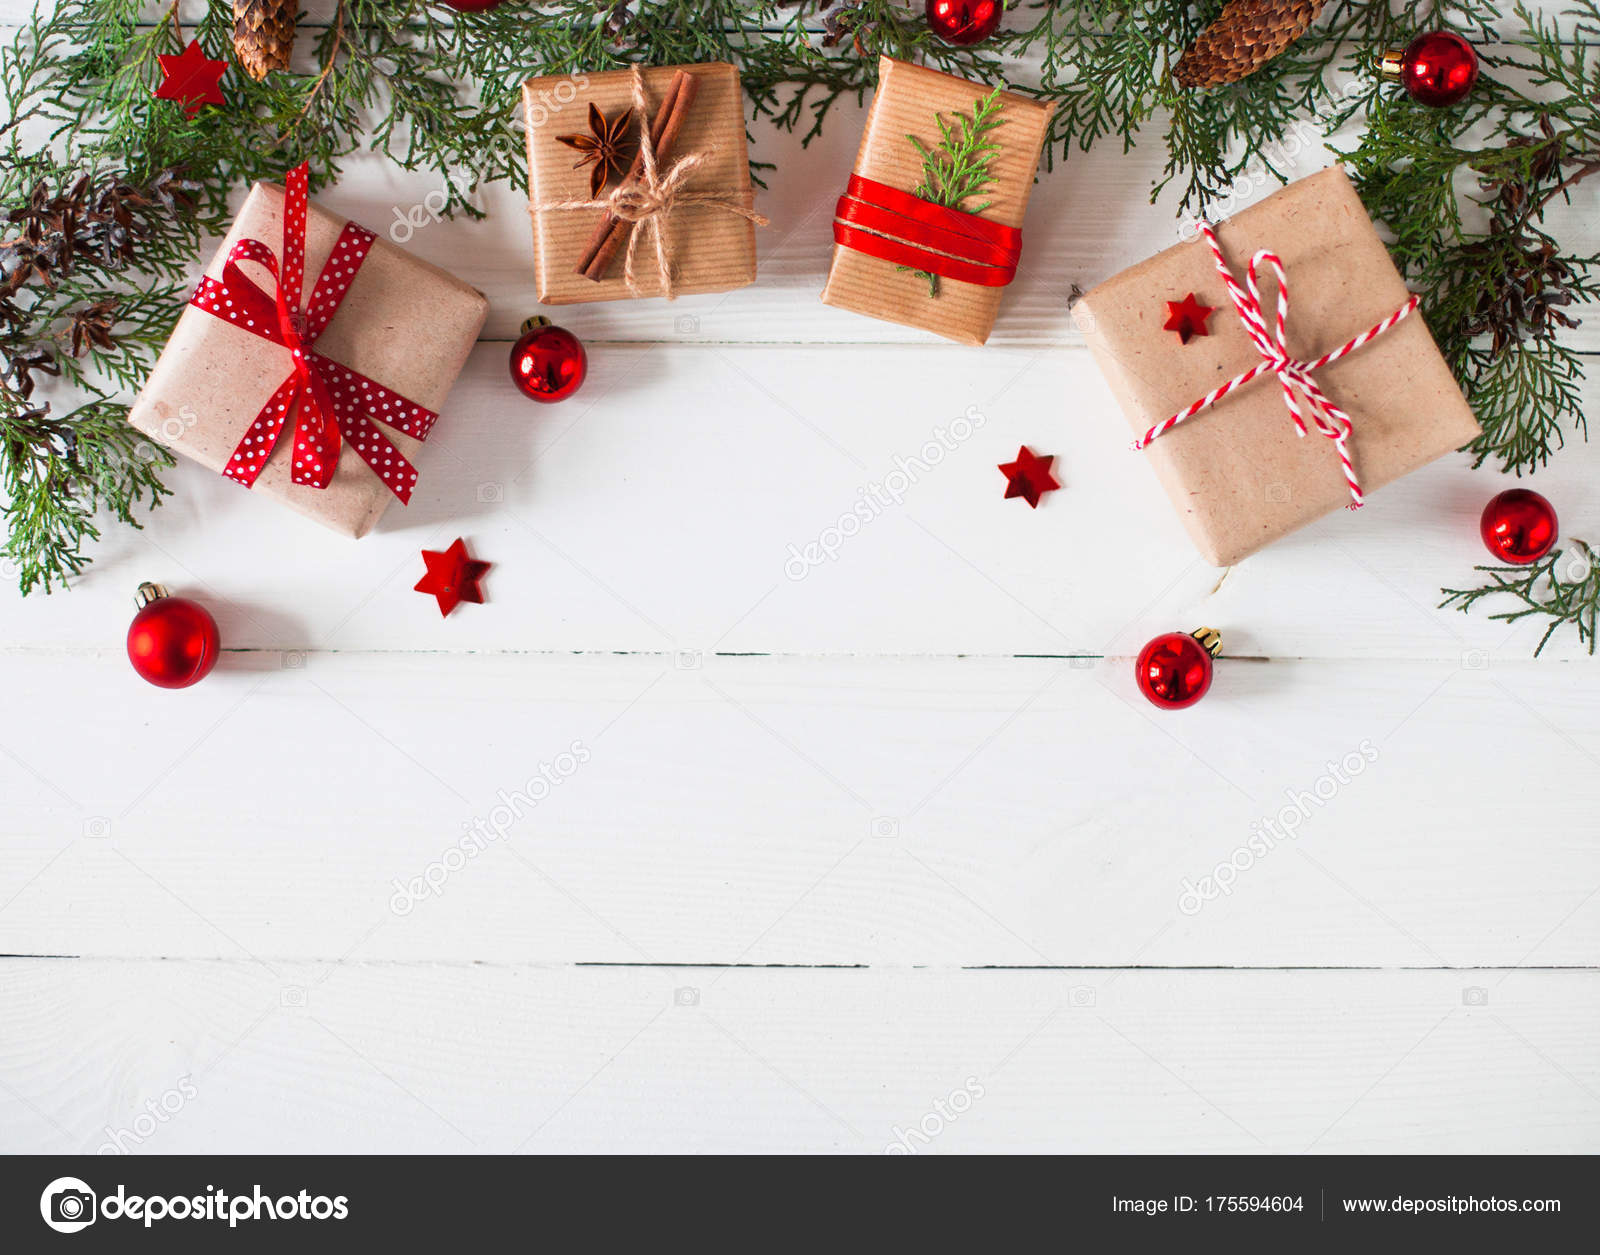 christmas or new year background plain composition made of xmas decorations gift and fir branches flat lay blank space for a greeting text photo by